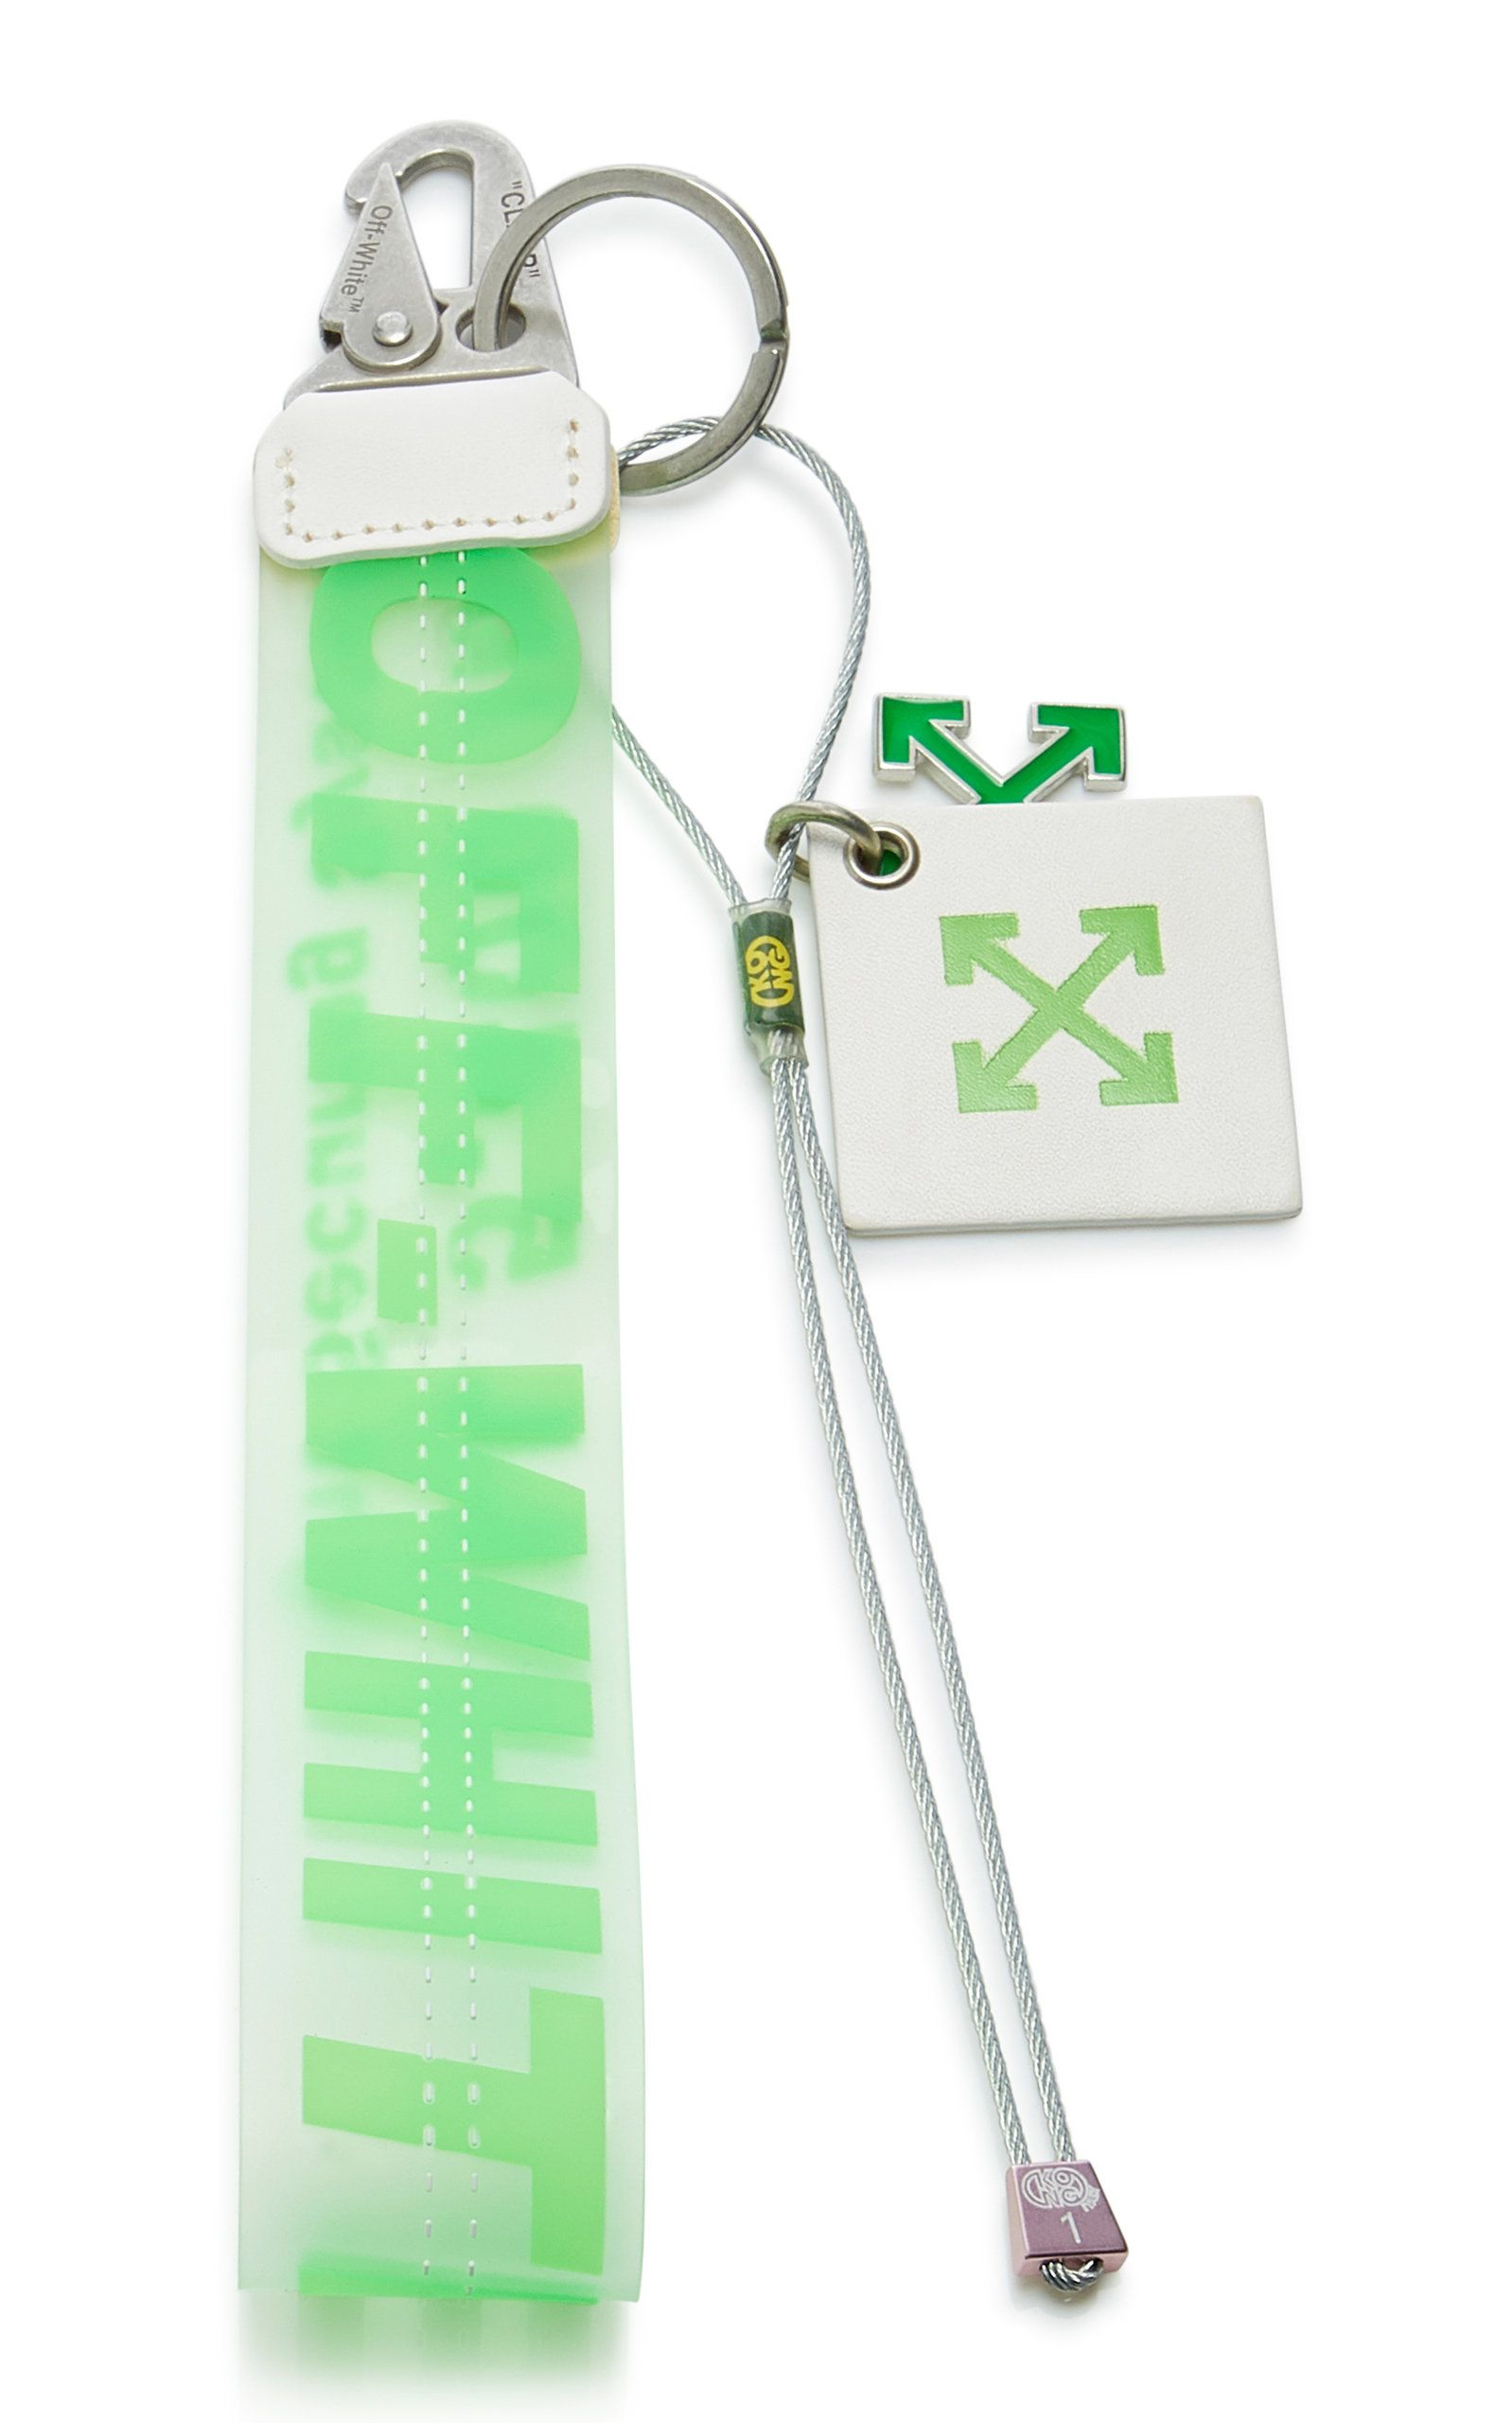 Off White Leather Trimmed Logo Embossed Pvc Key Fob In Green